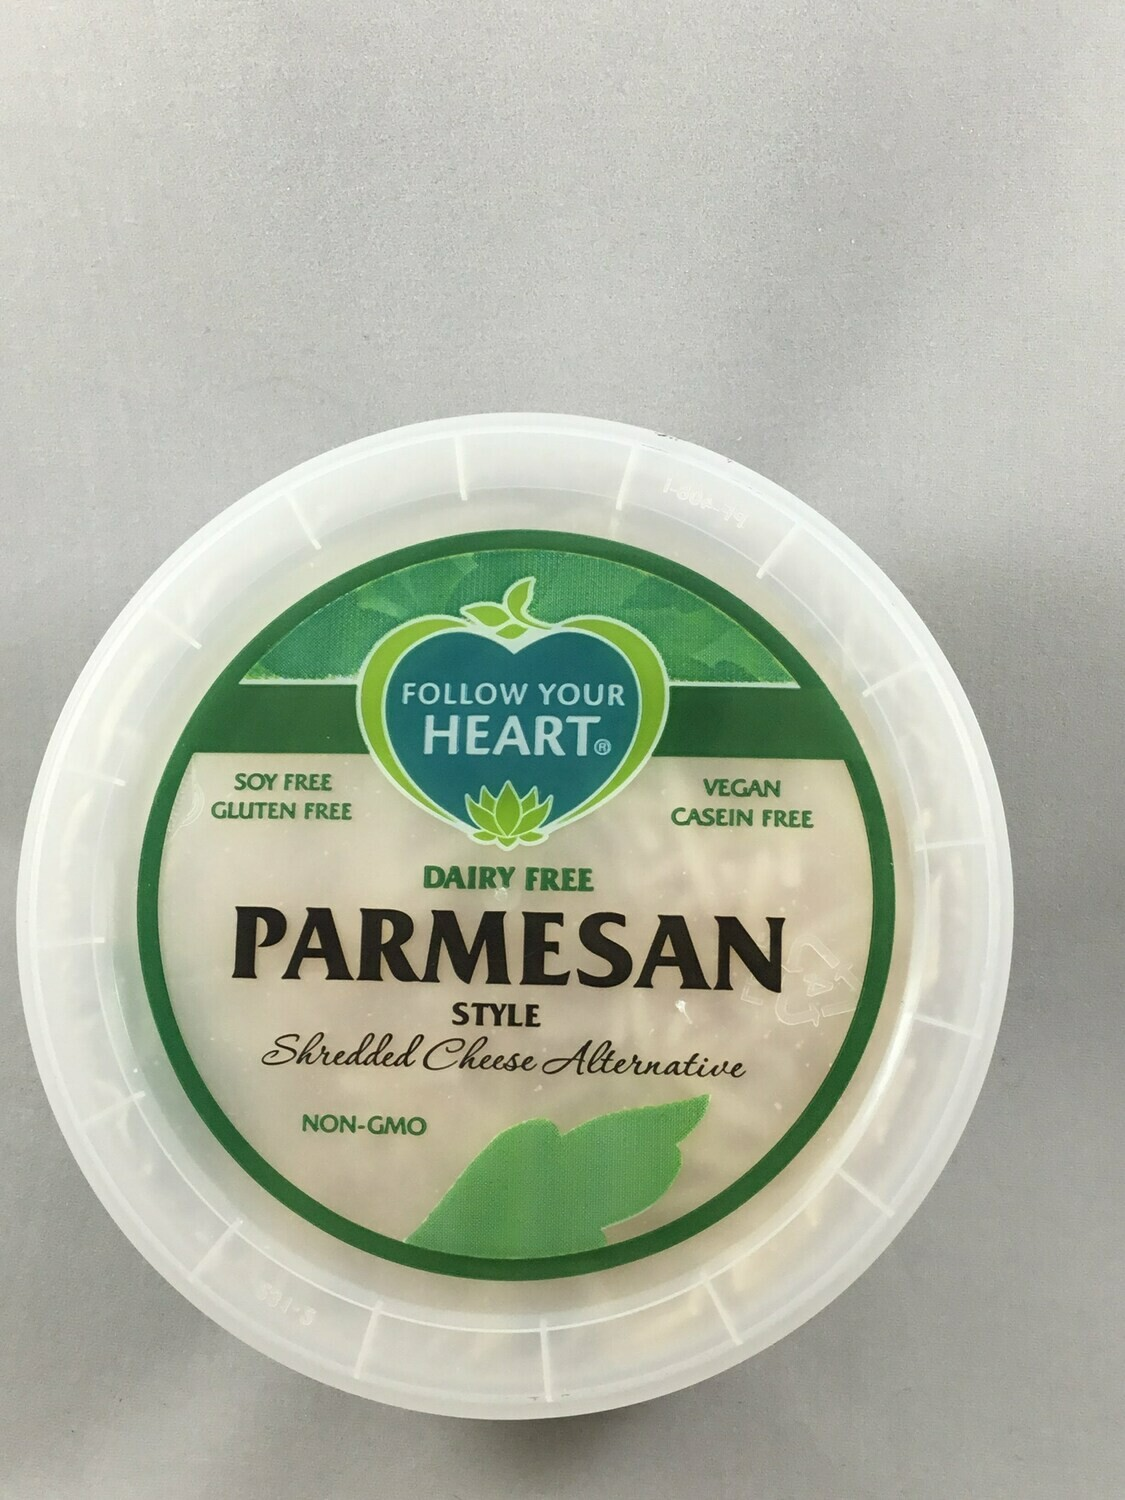 Follow your heart Parmesan shredded